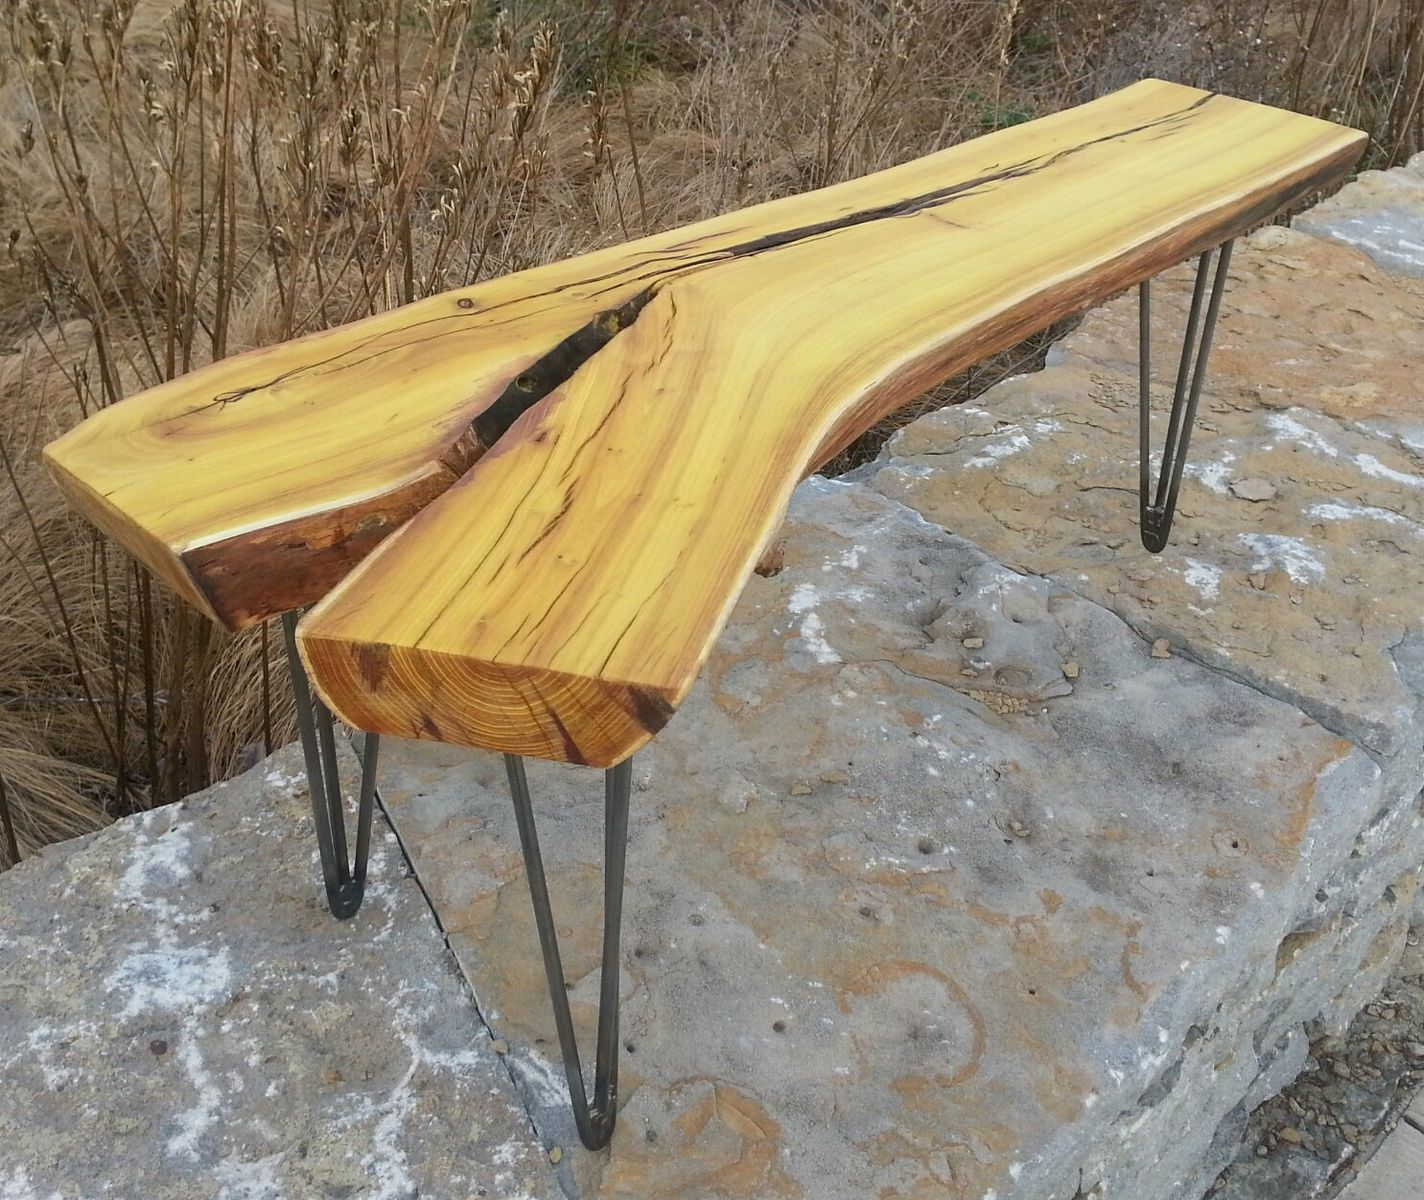 Custom made osage orange live edge coffee table modern rustic natural edges hairpin legs by Live wood coffee table